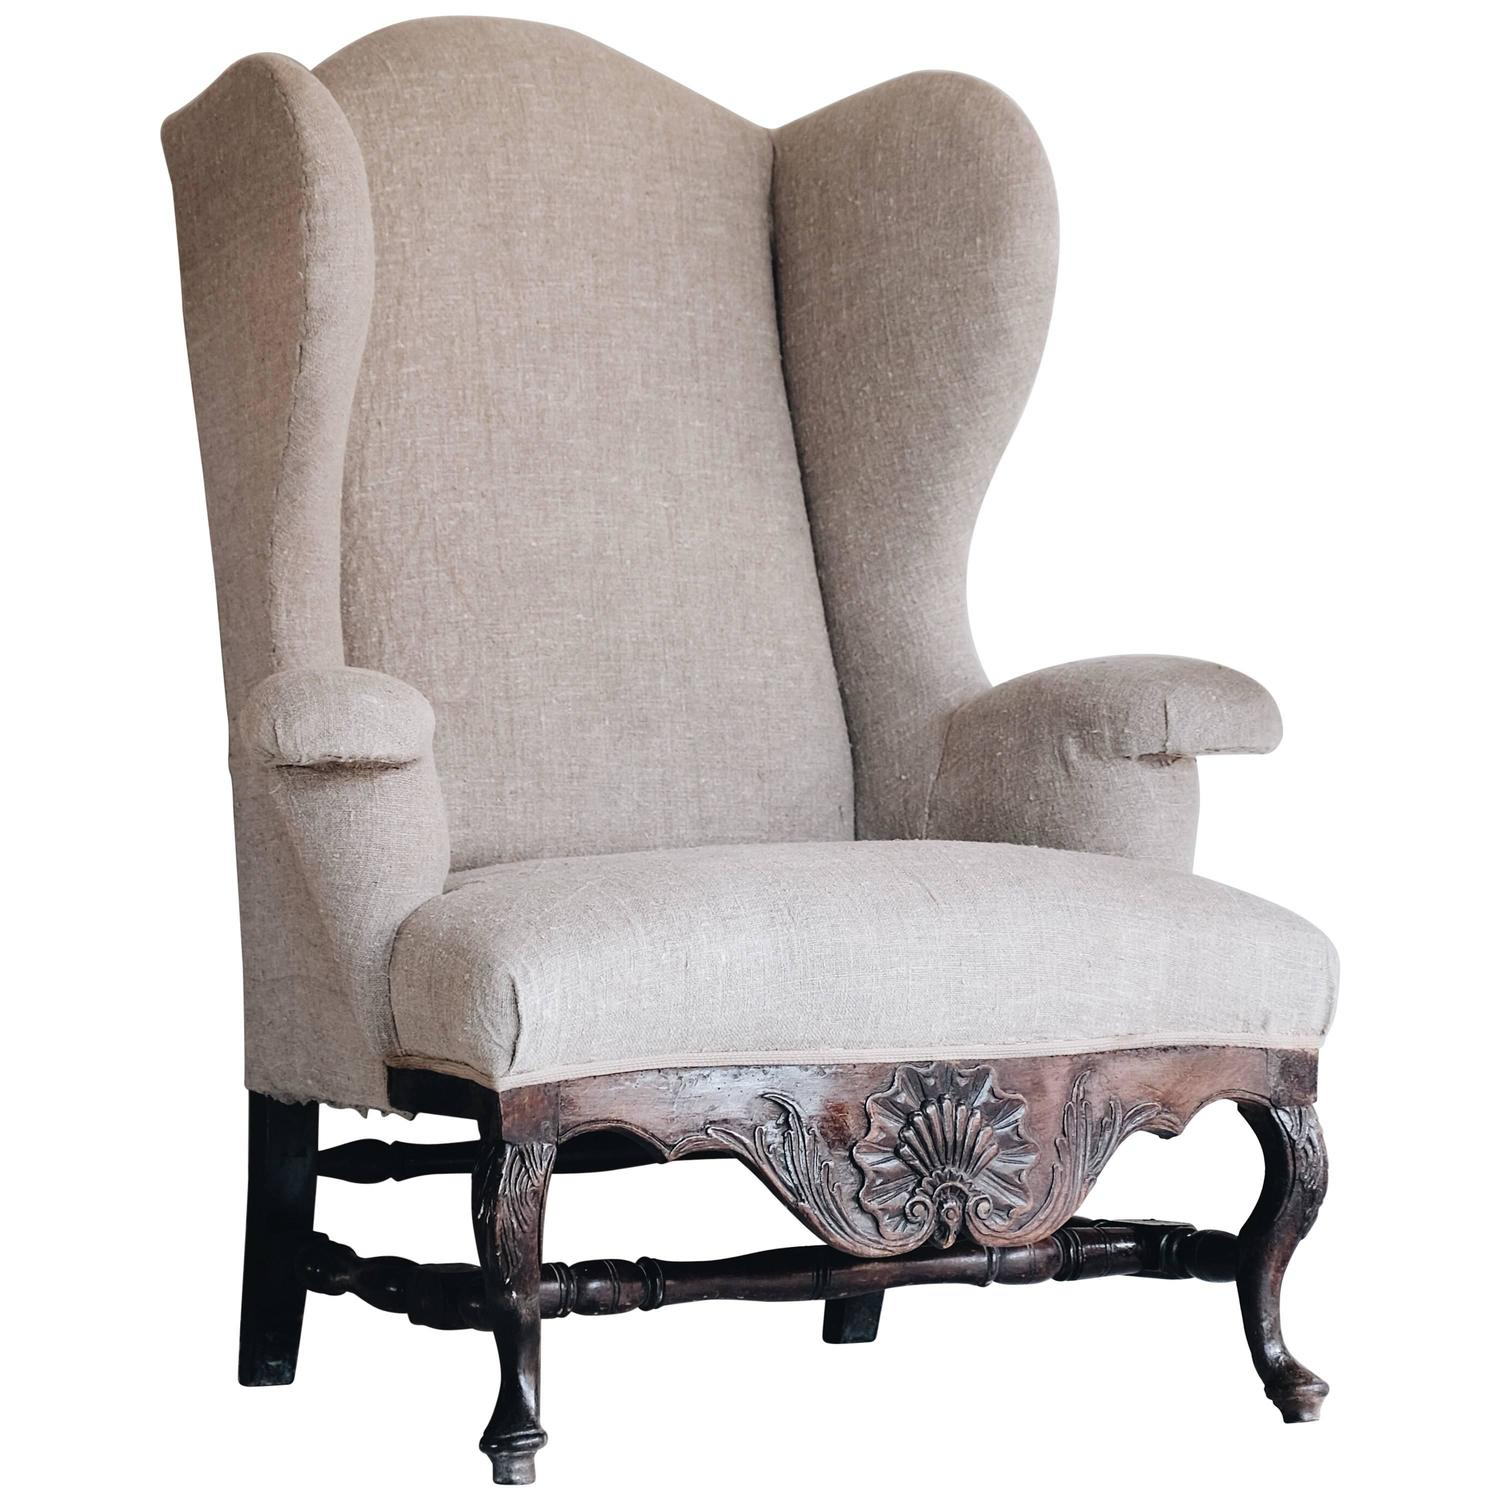 Heywood Wakefield Wicker Wingback Armchairs For Sale at 1stdibs